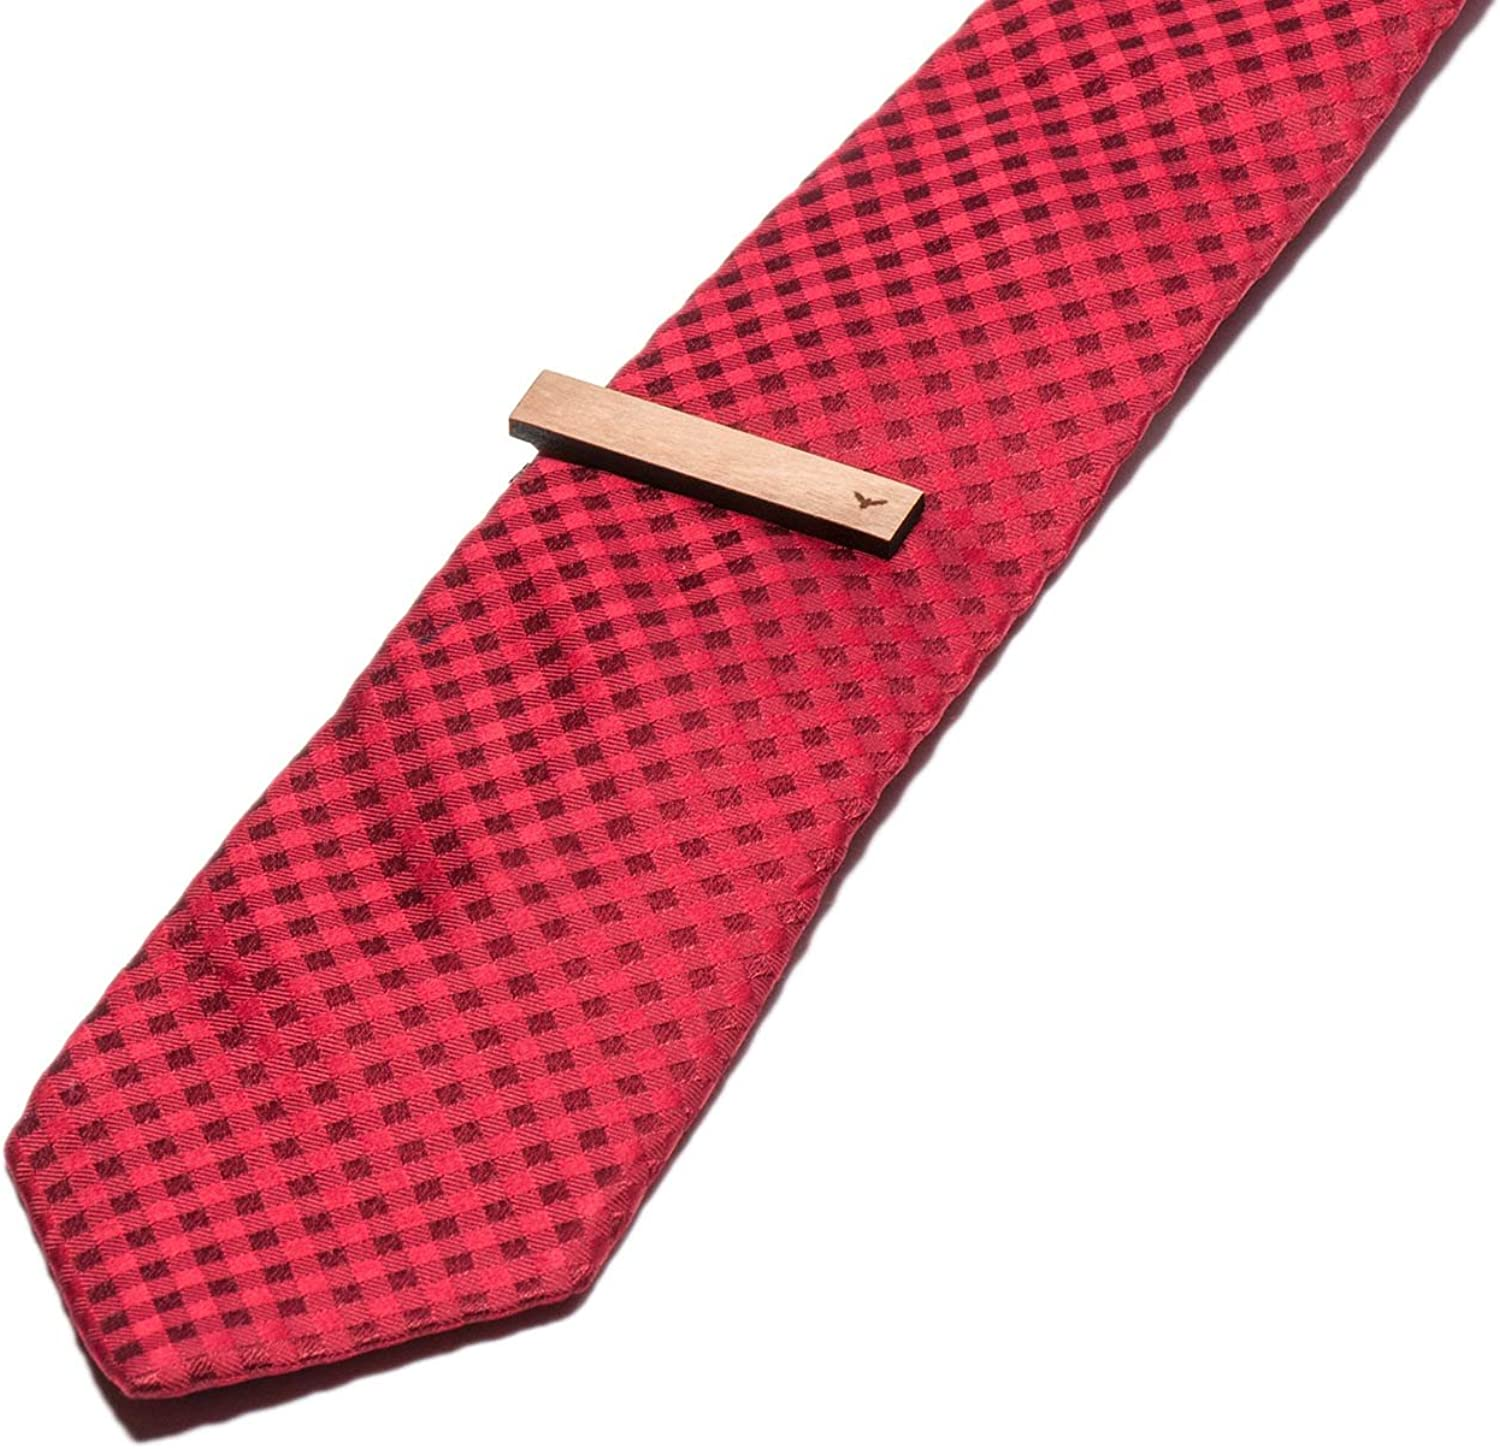 Wooden Accessories Company Wooden Tie Clips with Laser Engraved Fruit Bat Design Cherry Wood Tie Bar Engraved in The USA